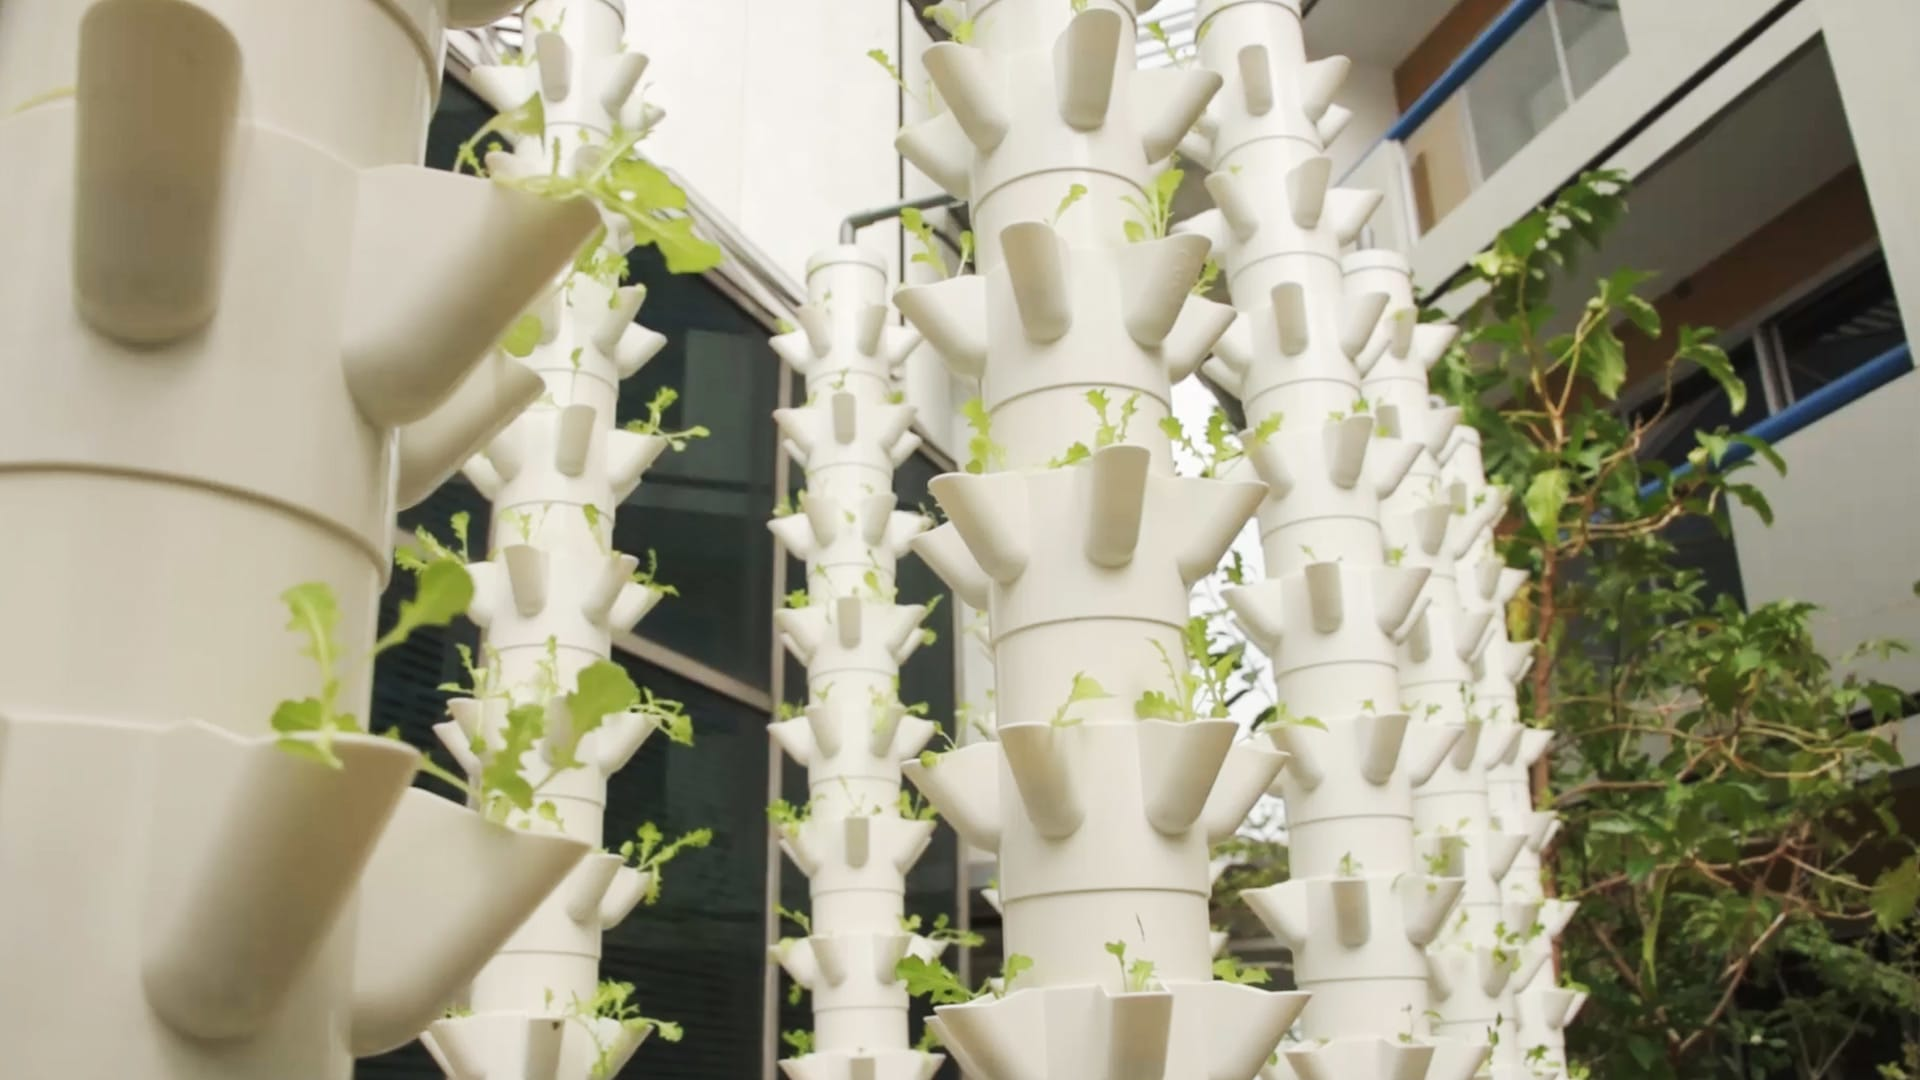 A fish and vegetable farm on a hotel rooftop in the heart of Singapore?